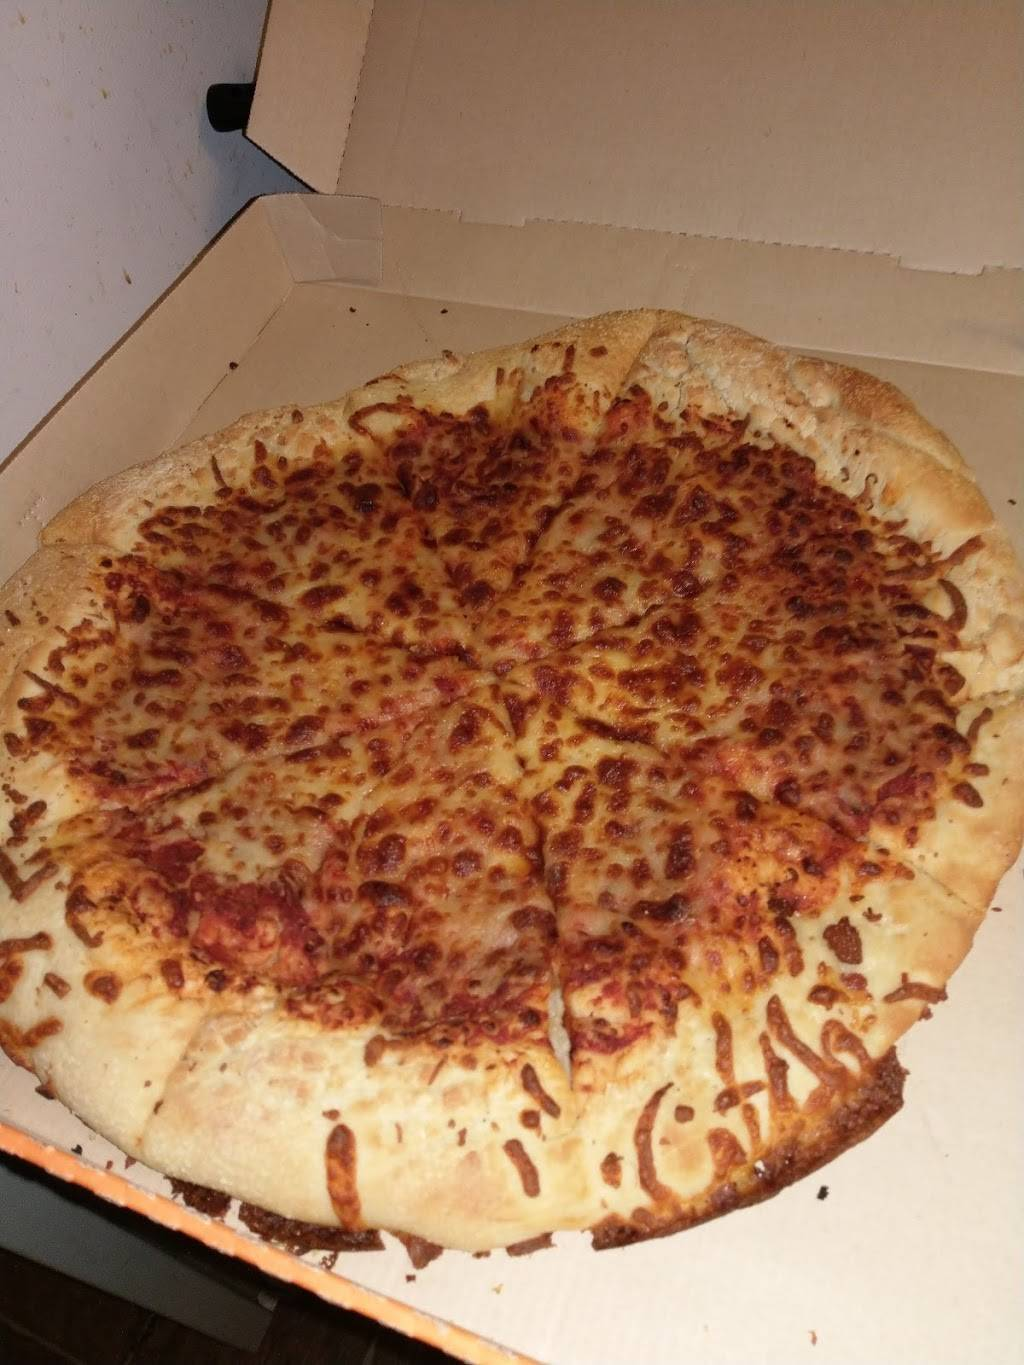 Little Caesars Pizza | meal takeaway | 641 SE Main St, Simpsonville, SC 29681, USA | 8649632999 OR +1 864-963-2999